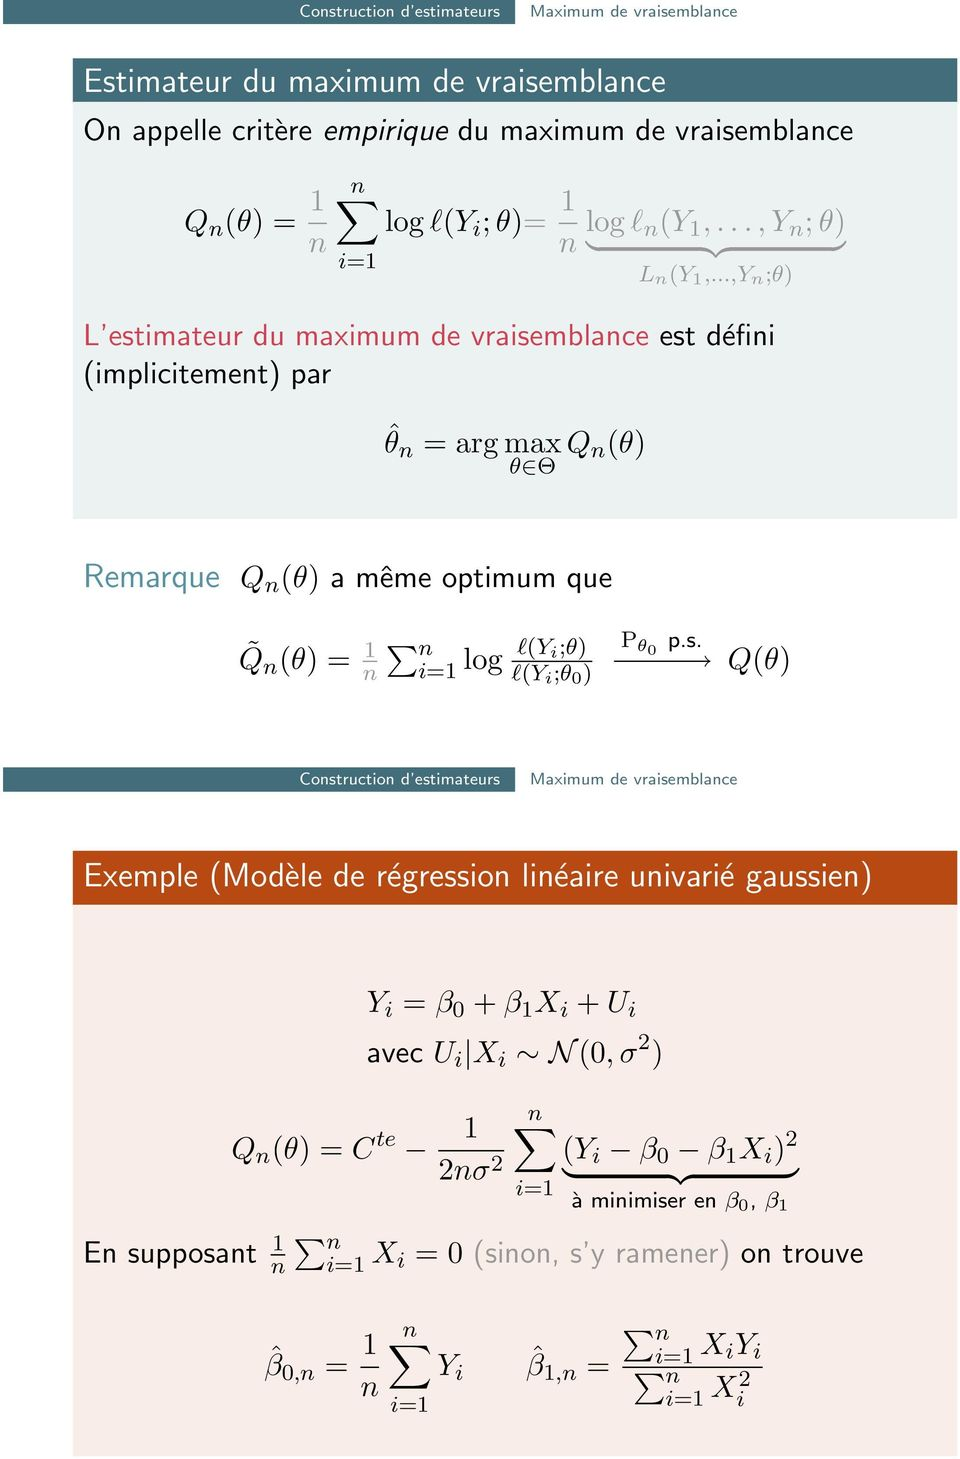 ..,Y n ;θ) L estimateur du maximum de vraisemblance est défini (implicitement) par ˆθ n = arg max θ Θ Q n(θ) Remarque Q n (θ) a même optimum que Q n (θ) = n n log l(y i;θ) l(y i ;θ )